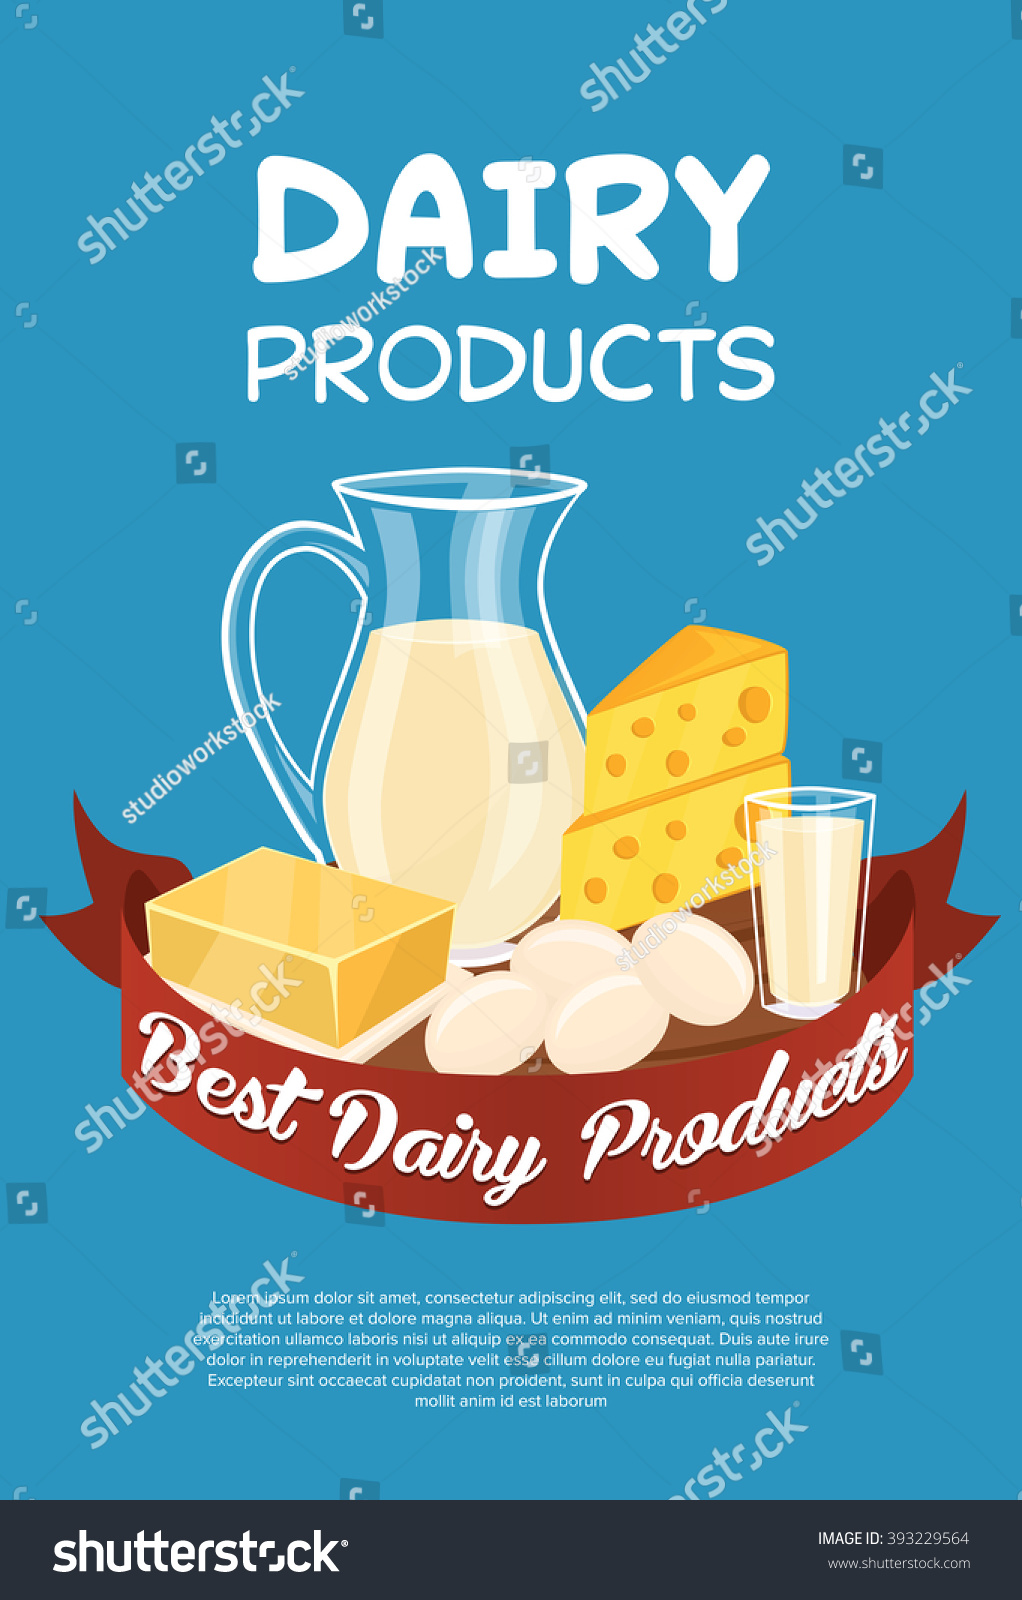 Dairy Products Poster Template Vector Illustration Lager-vektor ...